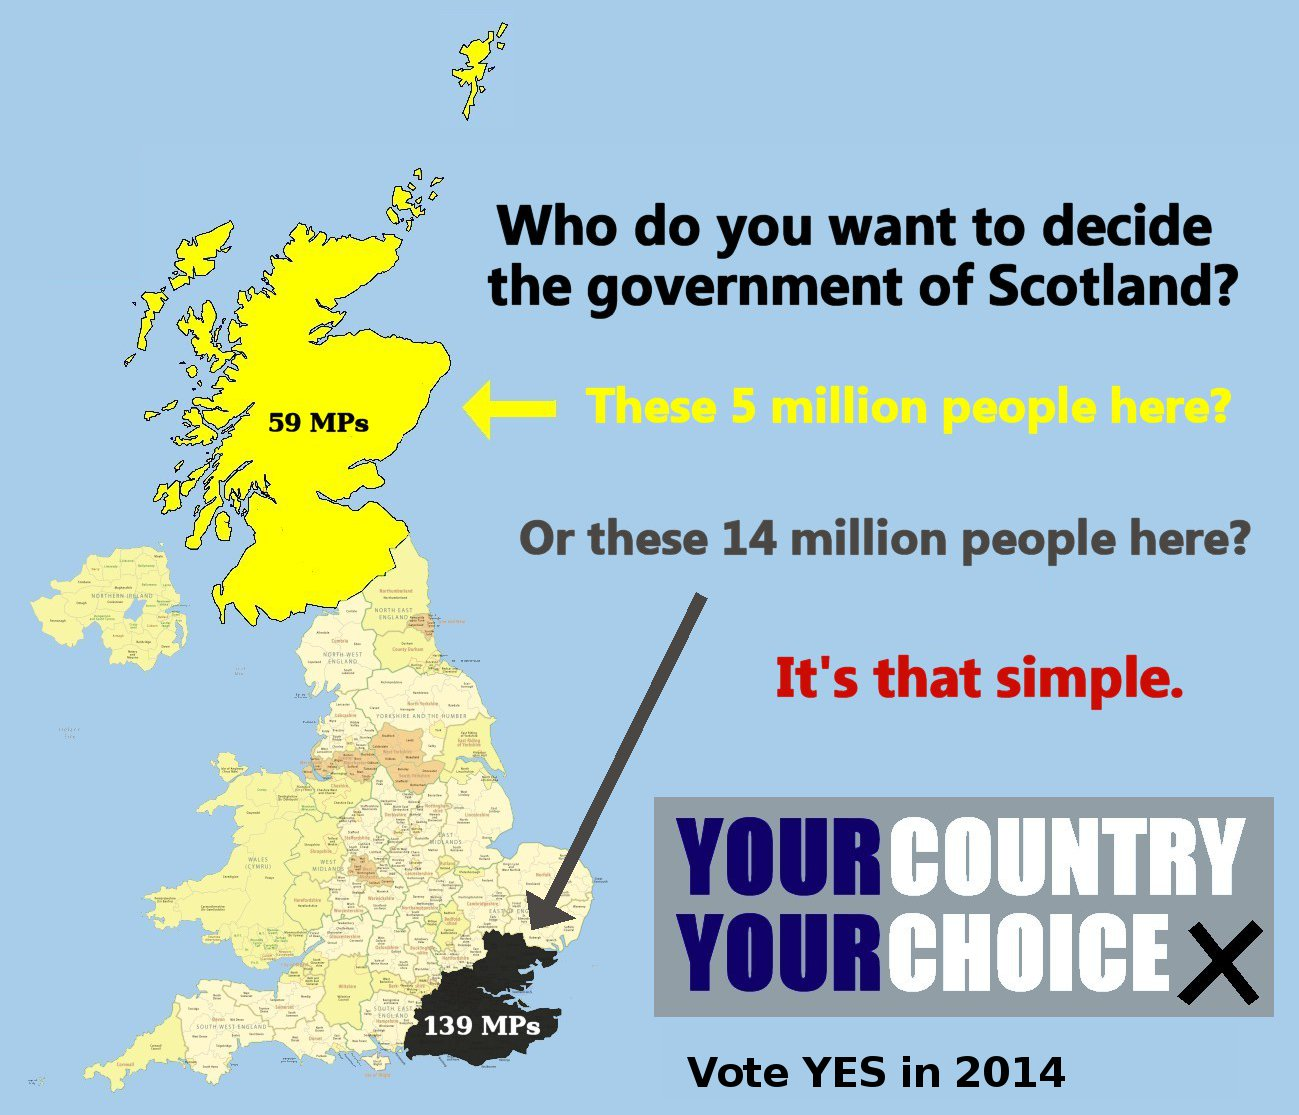 Who should Decide the Government of Scotland?